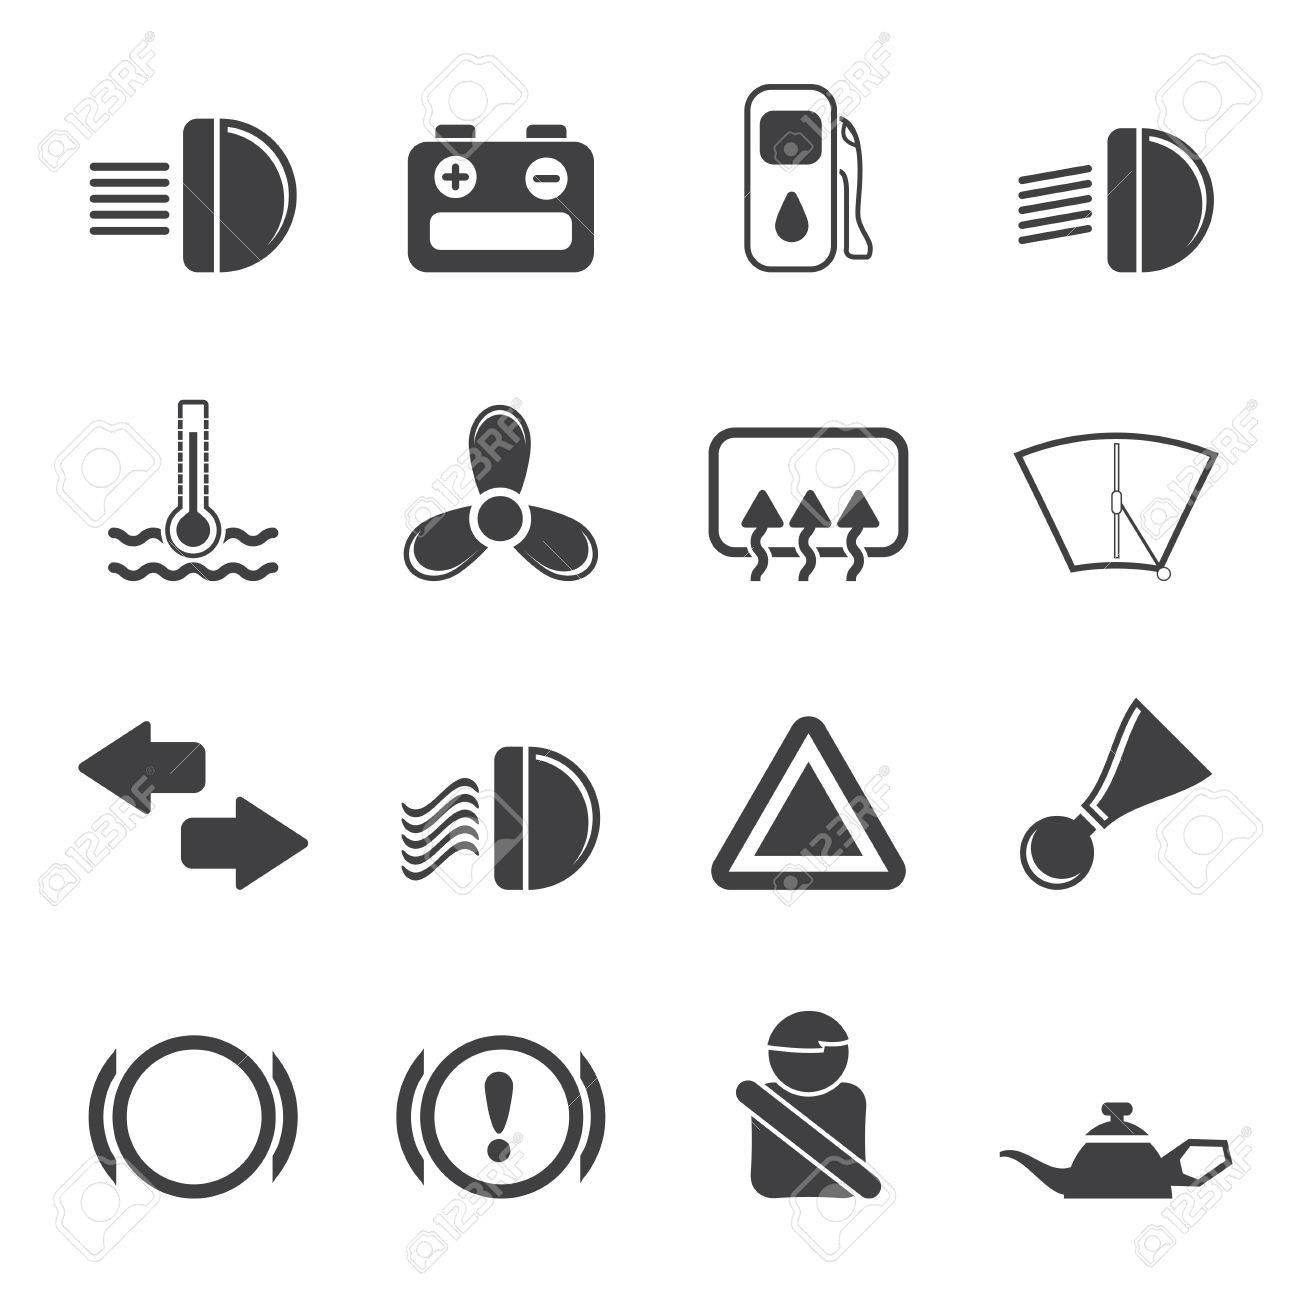 Silhouette Car Dashboard Simple Vector Icons Set Royalty Free - Car image sign of dashboardcar dashboard icons stock images royaltyfree imagesvectors